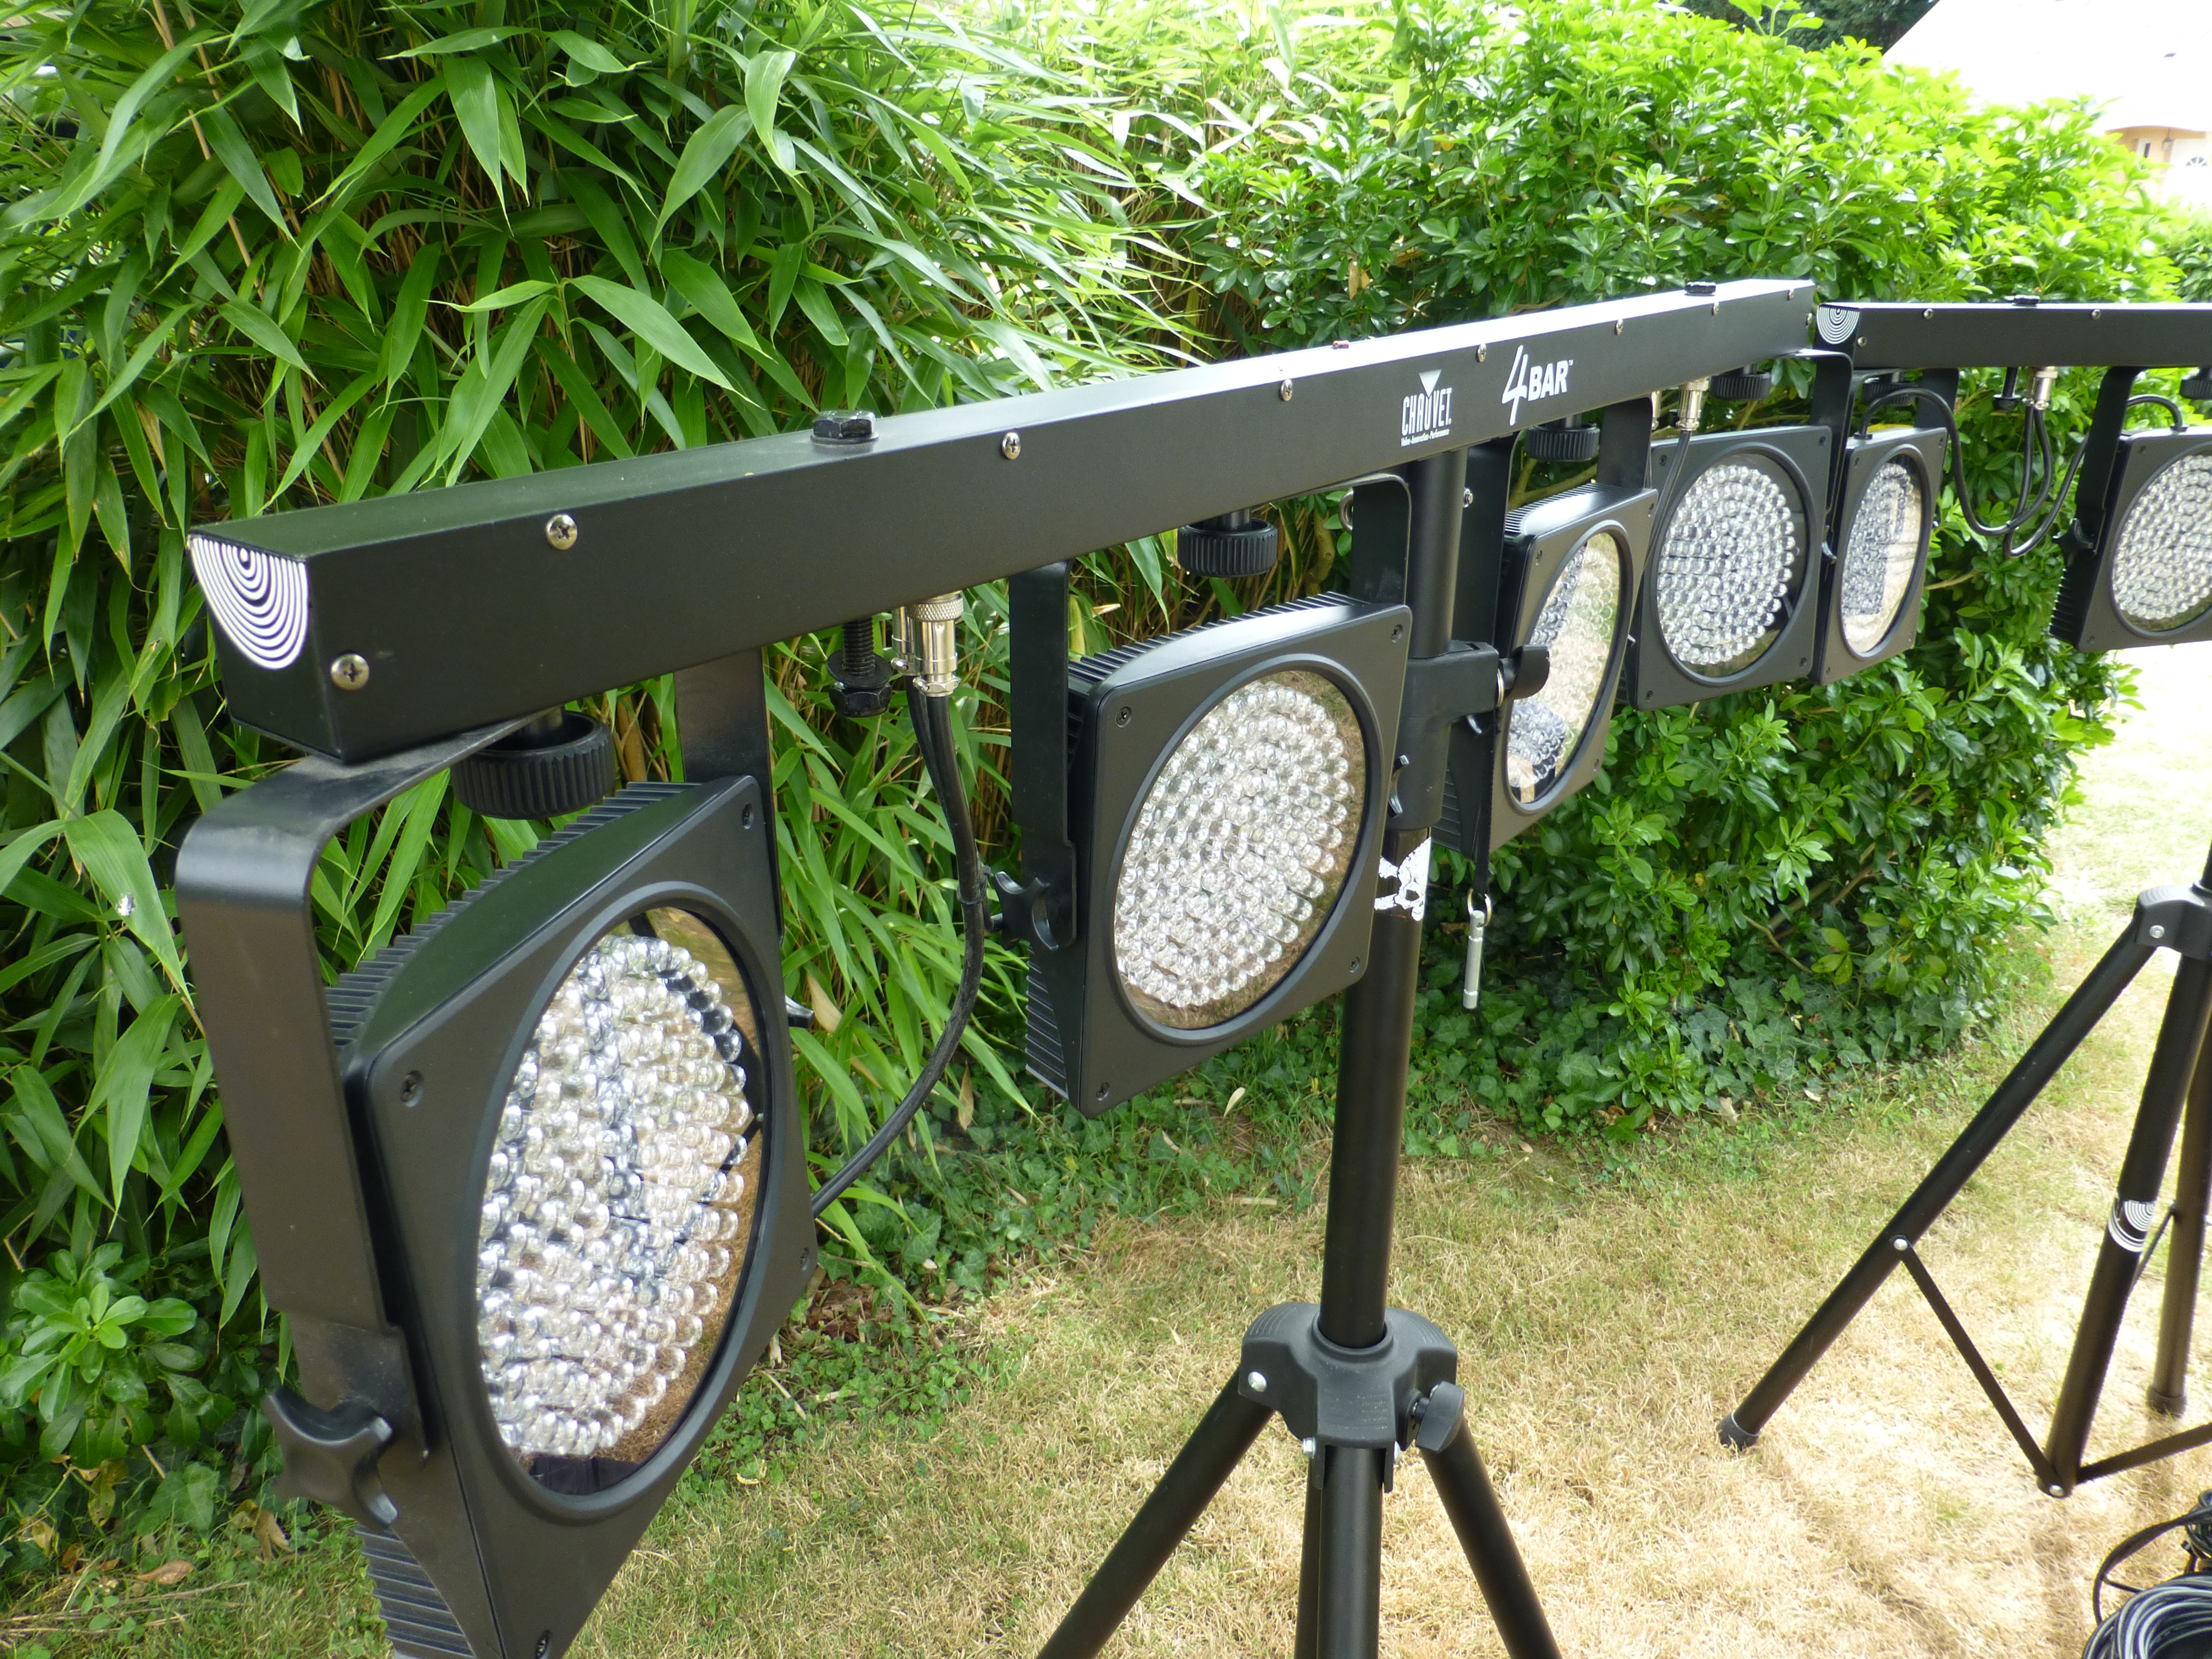 4bar Wash Light System Chauvet 4bar Wash Light System